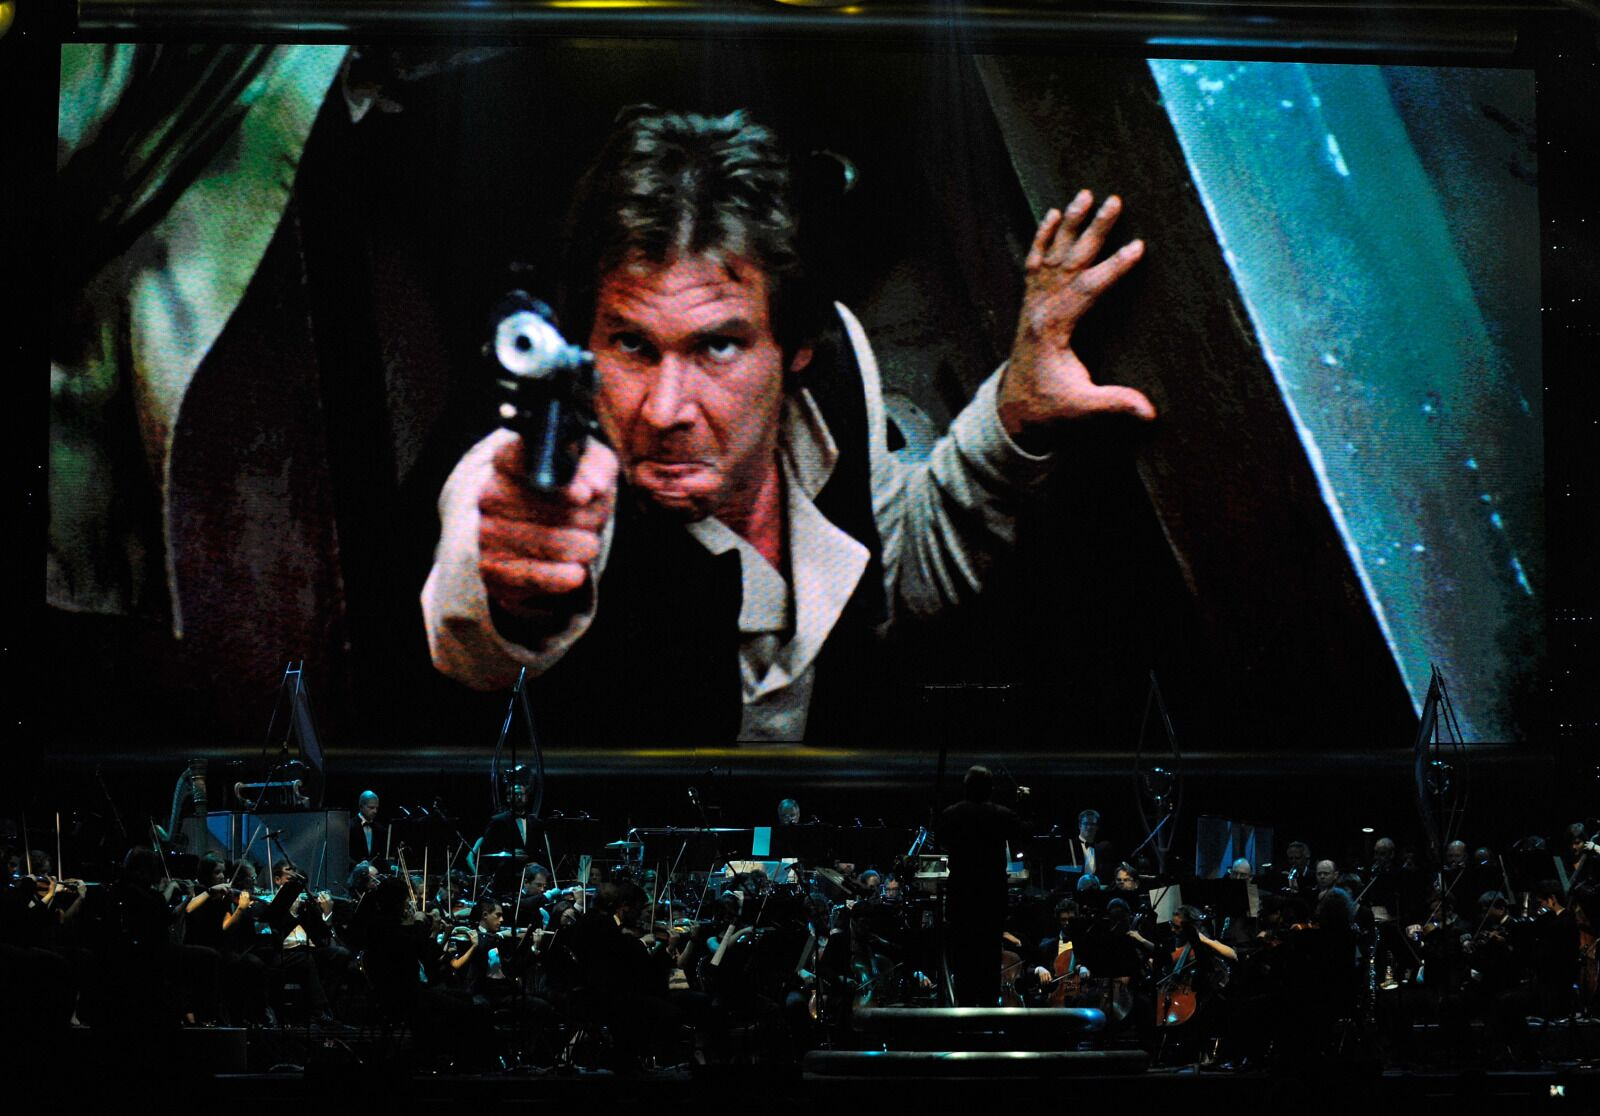 George Lucas was right about Han Solo